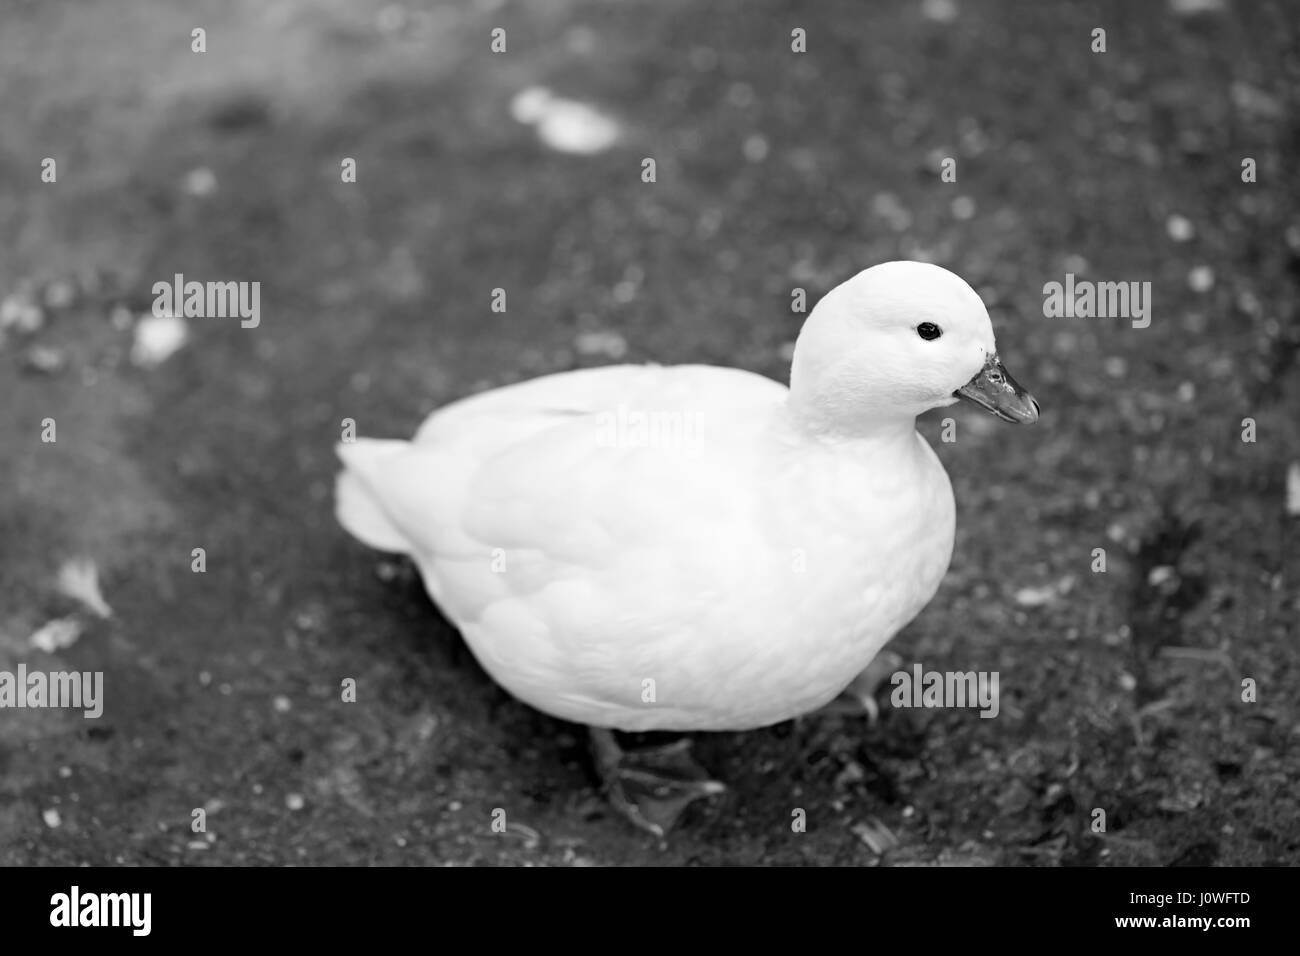 Small white duck black and white photograph - Stock Image